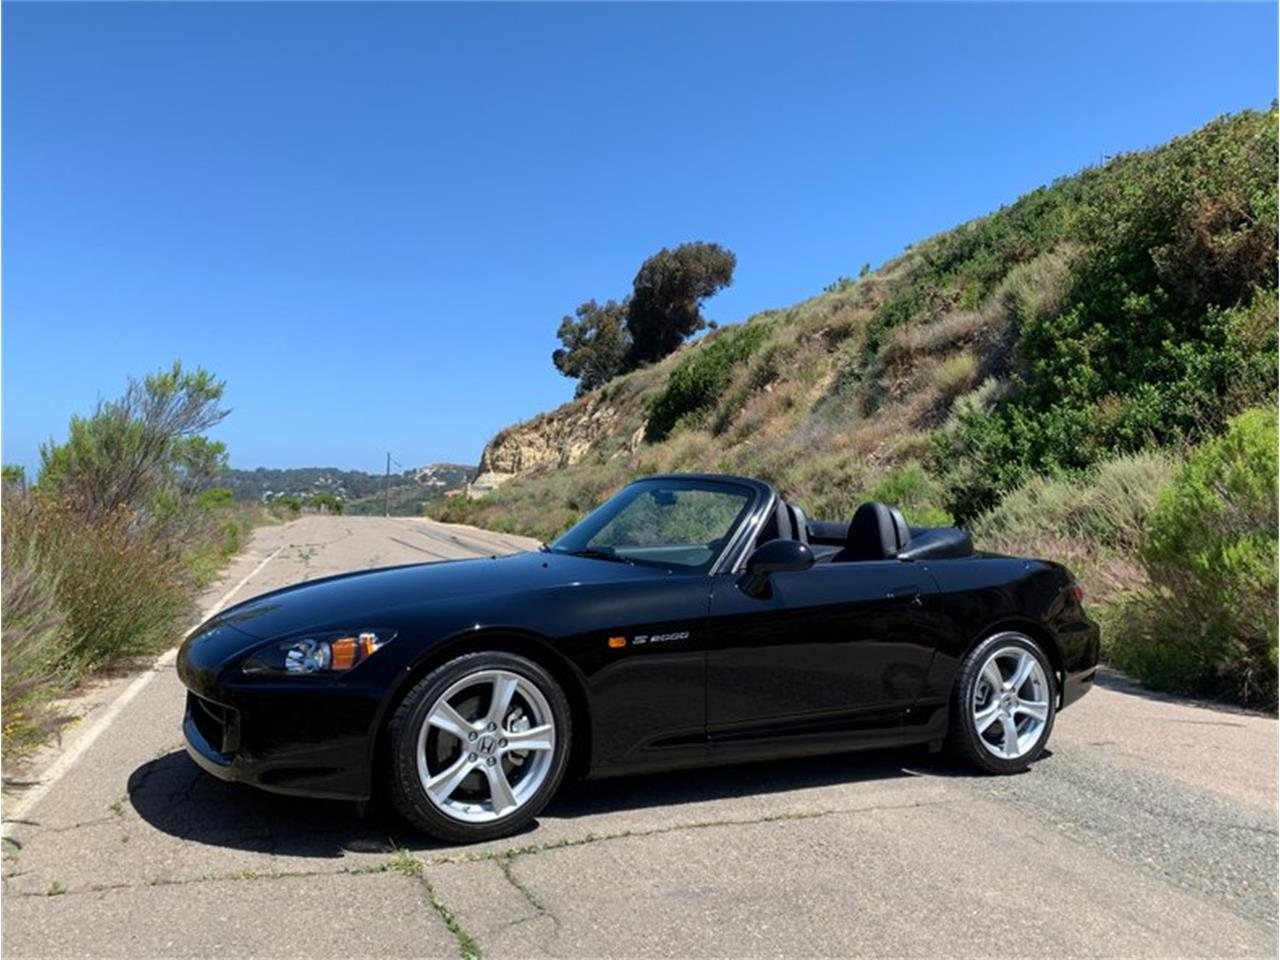 2009 Honda S2000 for sale in San Diego, CA – photo 2